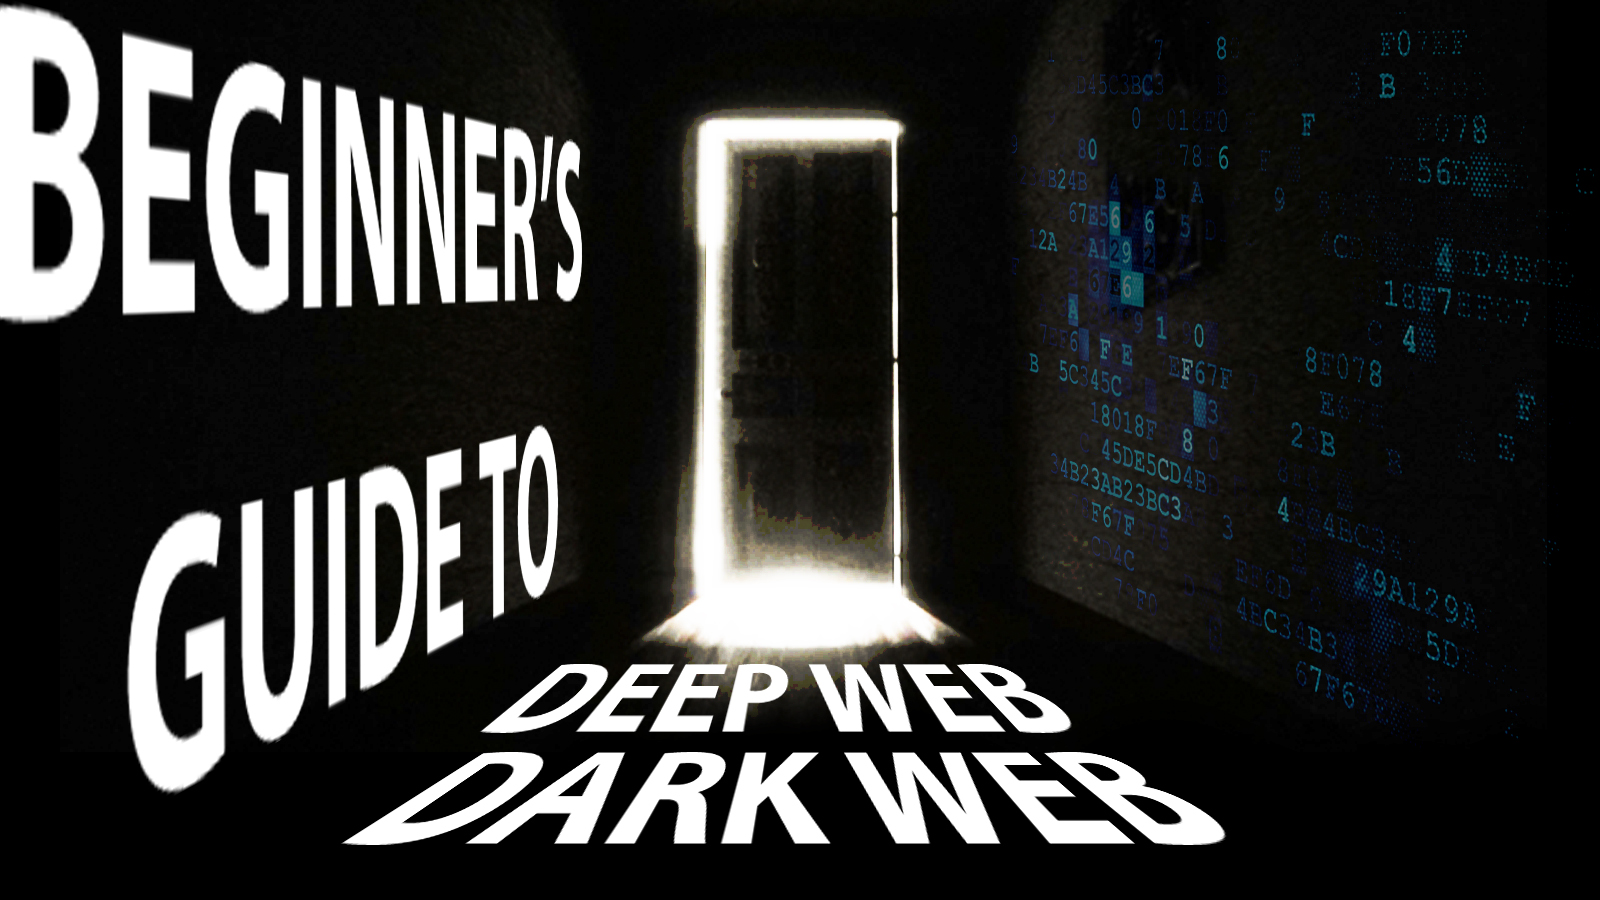 porn darkweb links  2016 Beginner's Guide To The Deep Web and The Dark Web